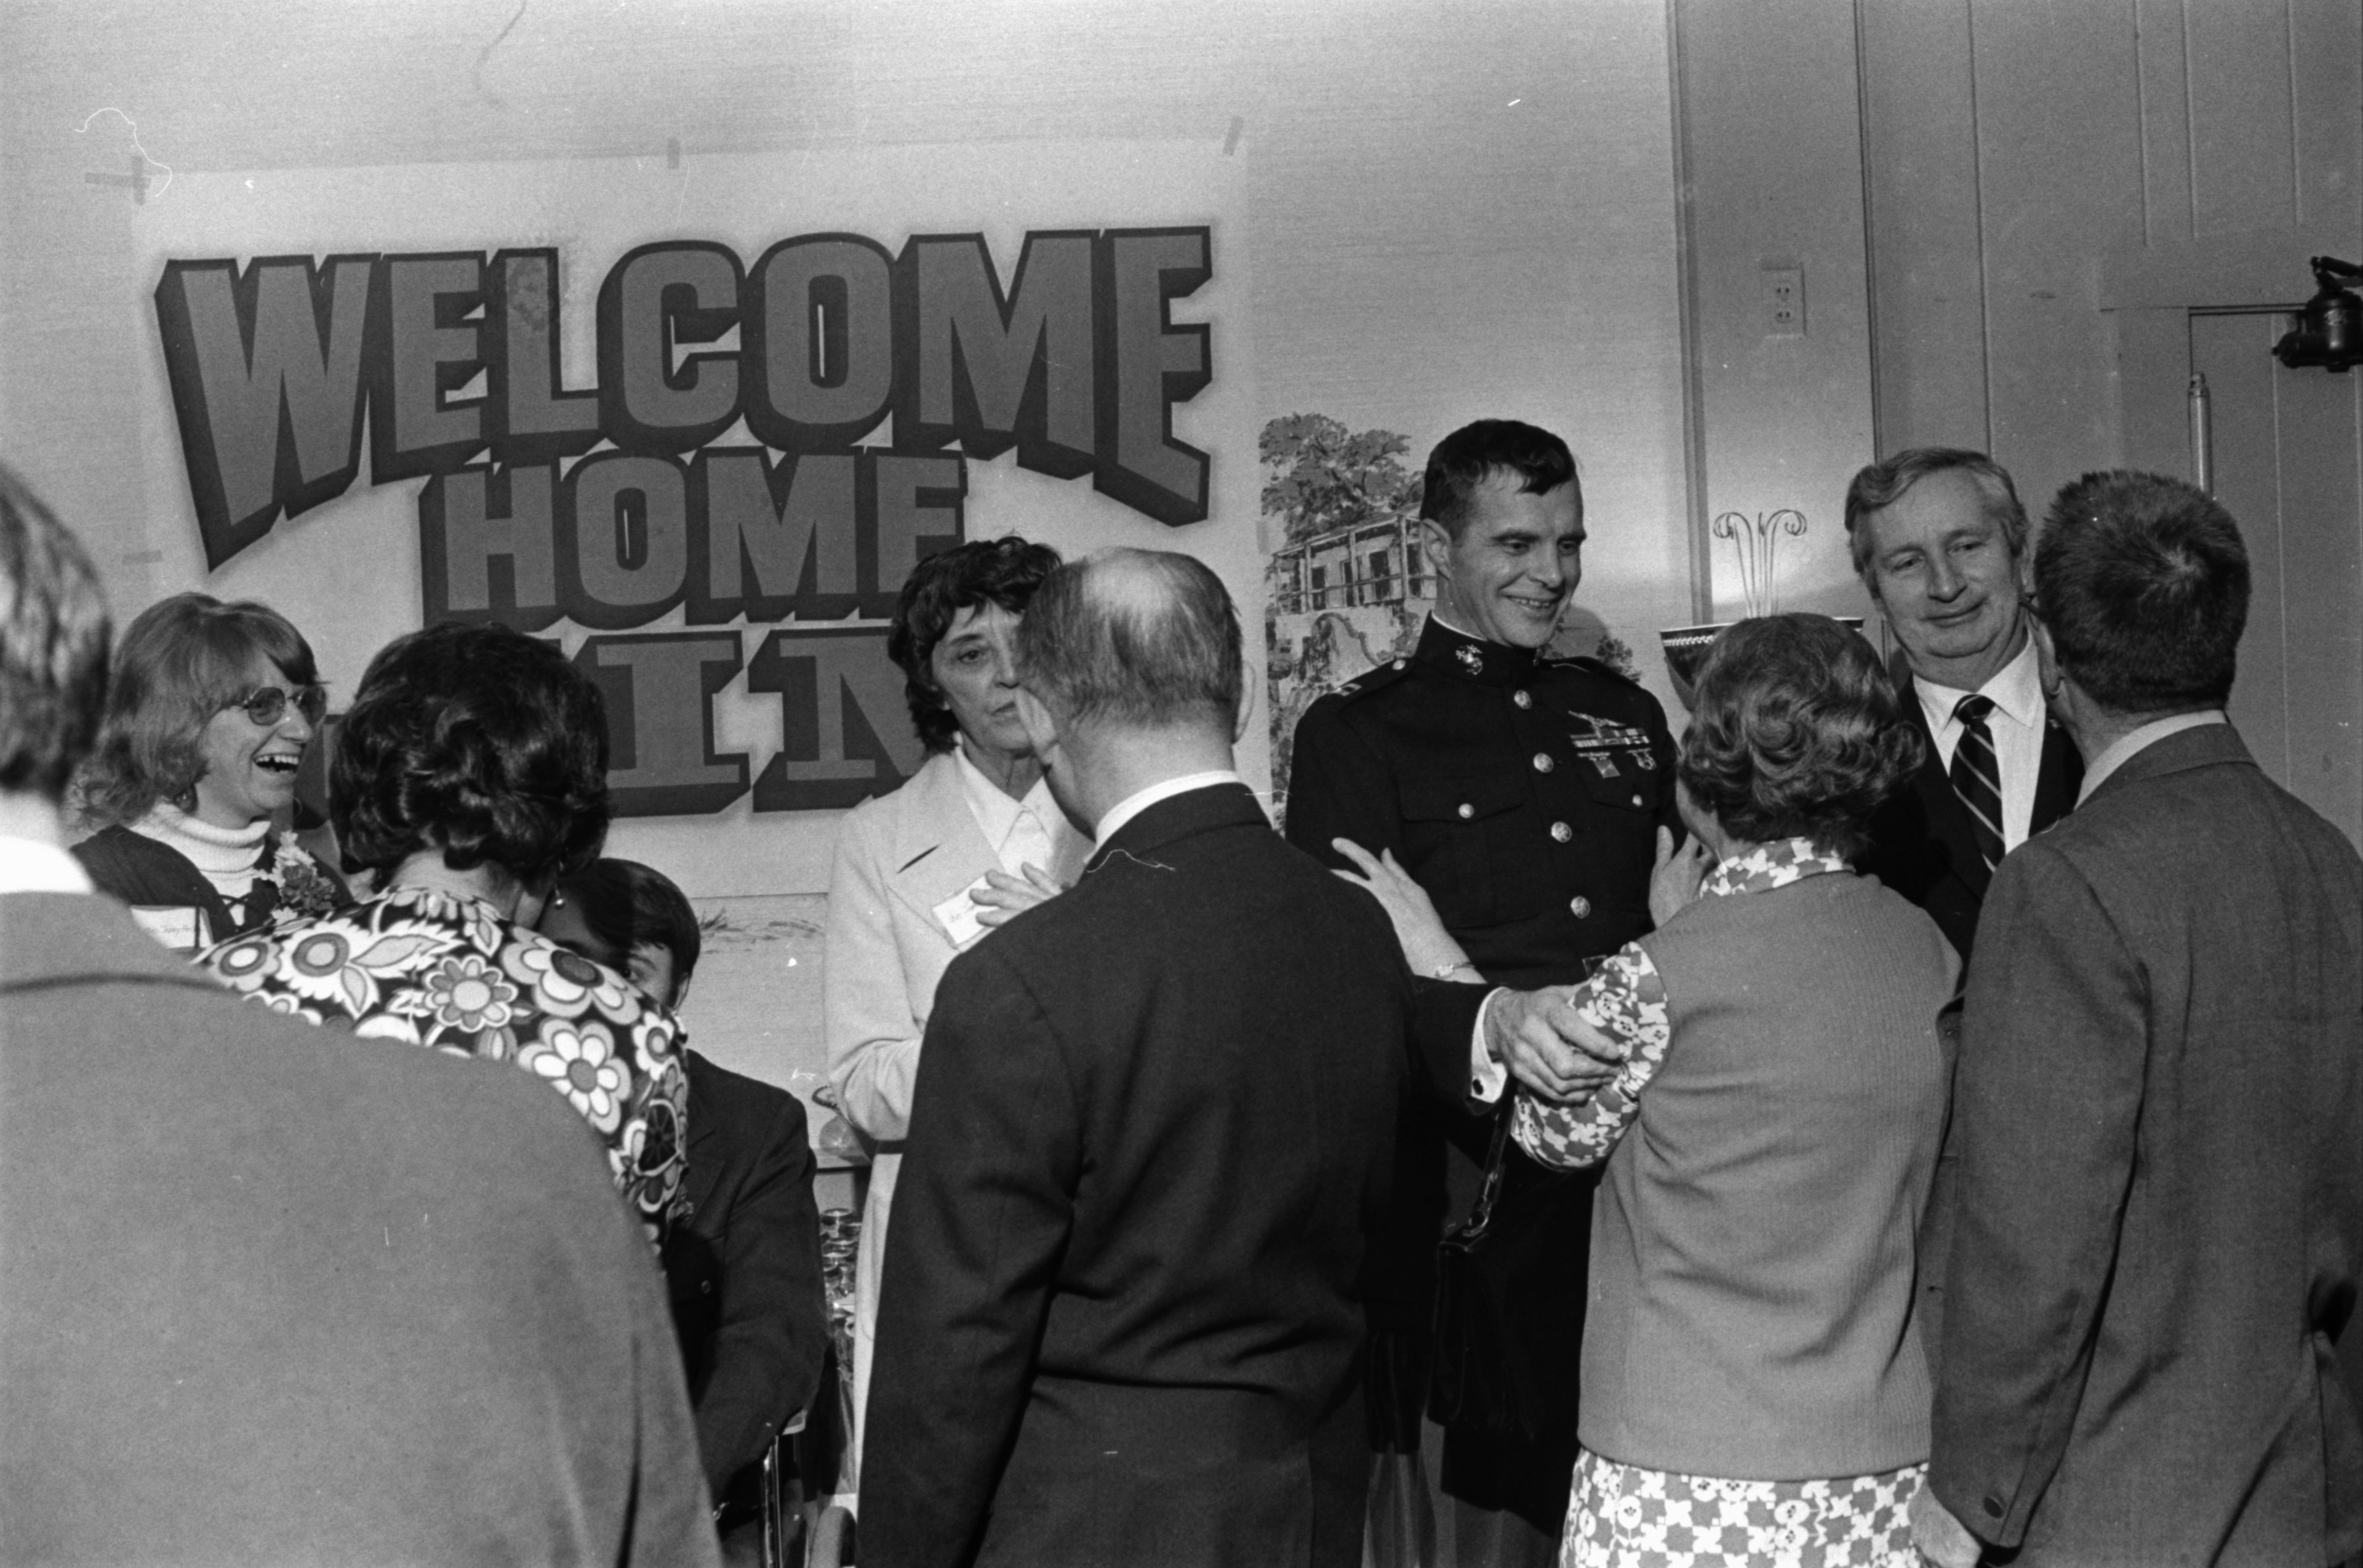 Capt. James Warner, former POW, following his arrival in Ypsilanti, April 1973 image